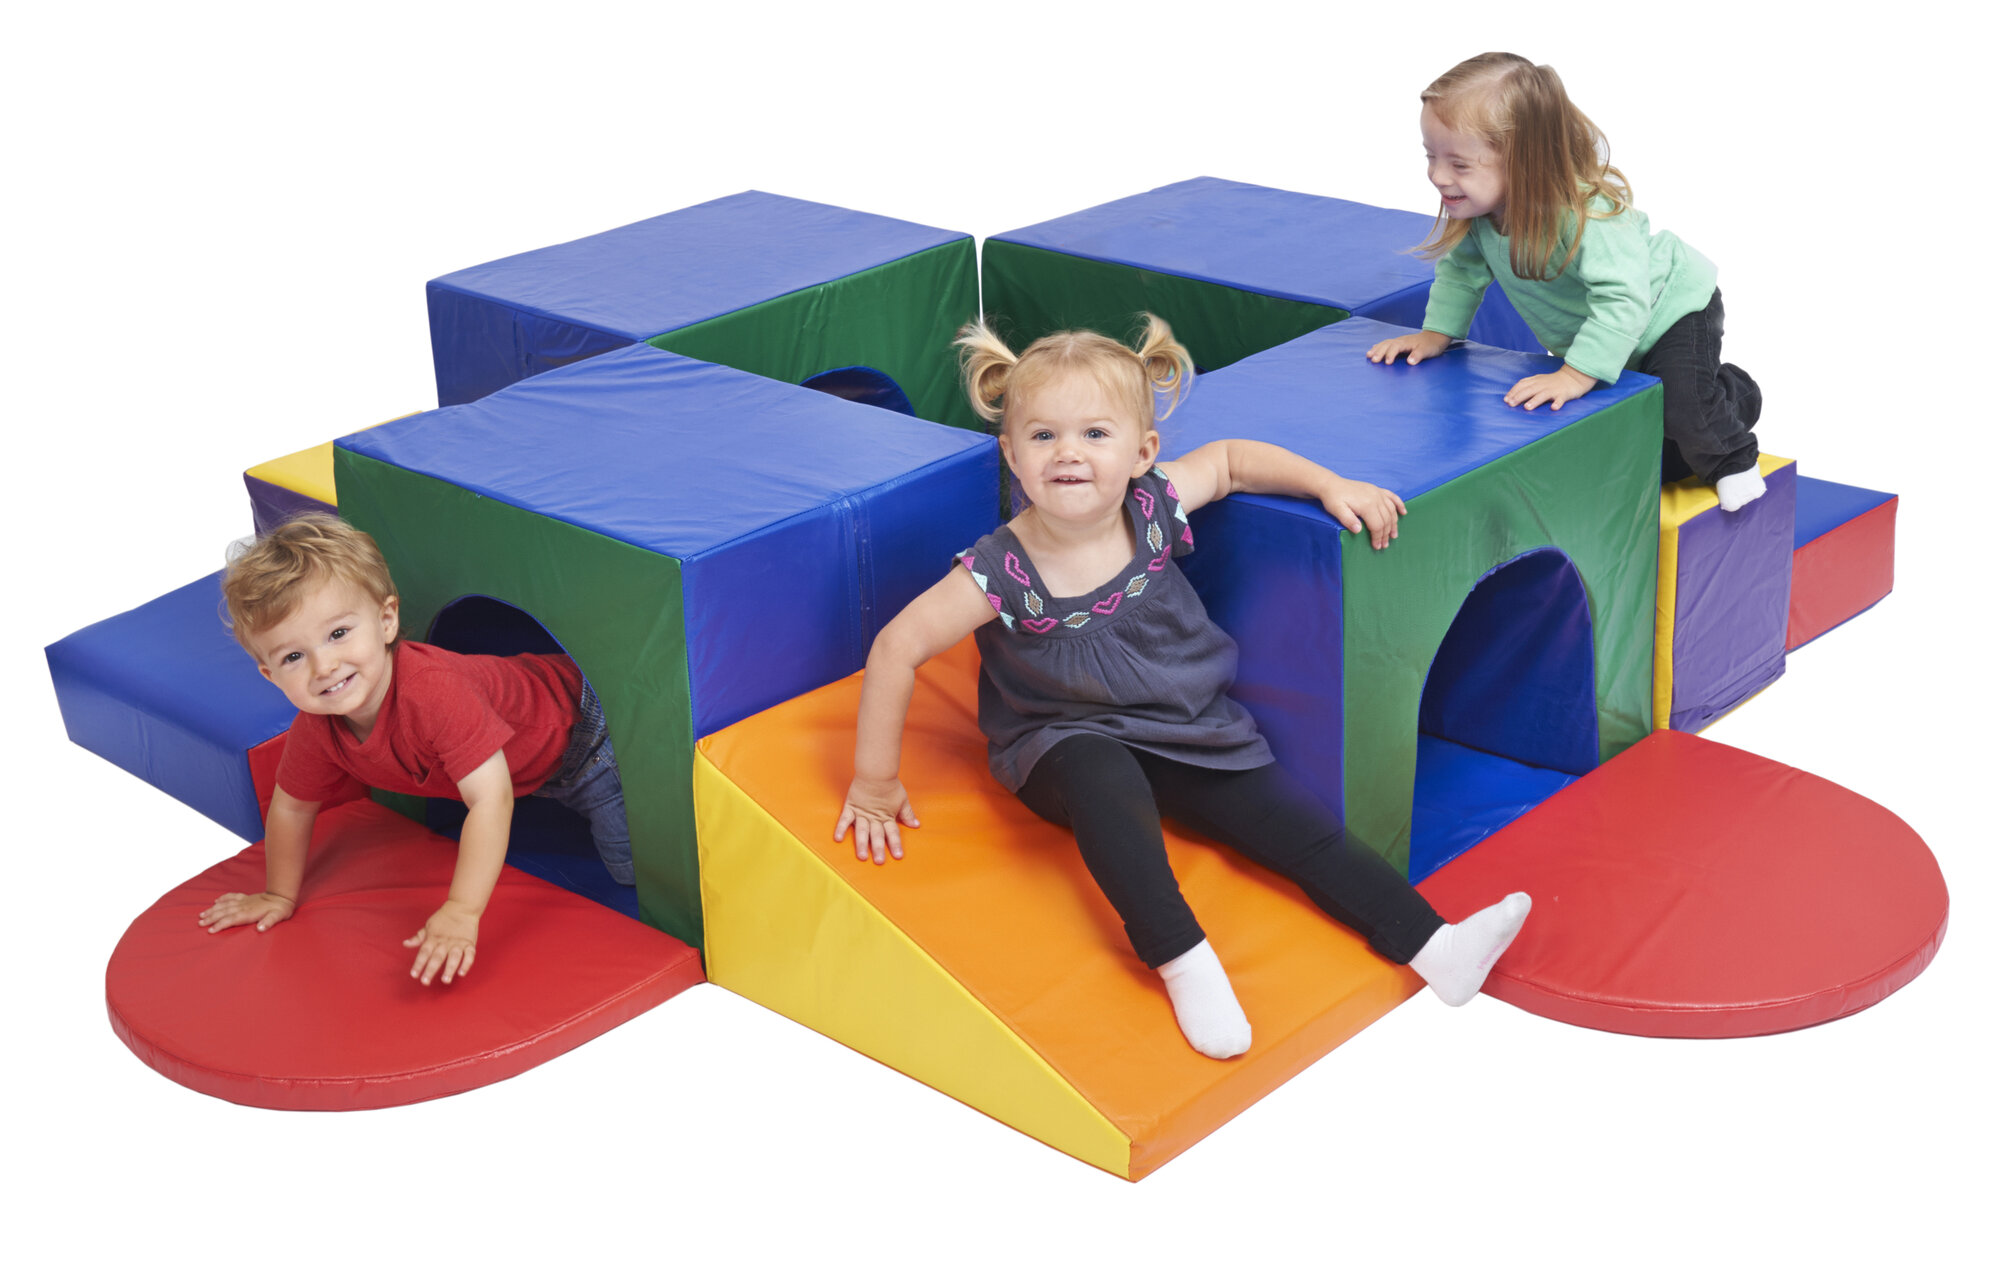 Soft Play Furniture Block with Kids ECR4Kids